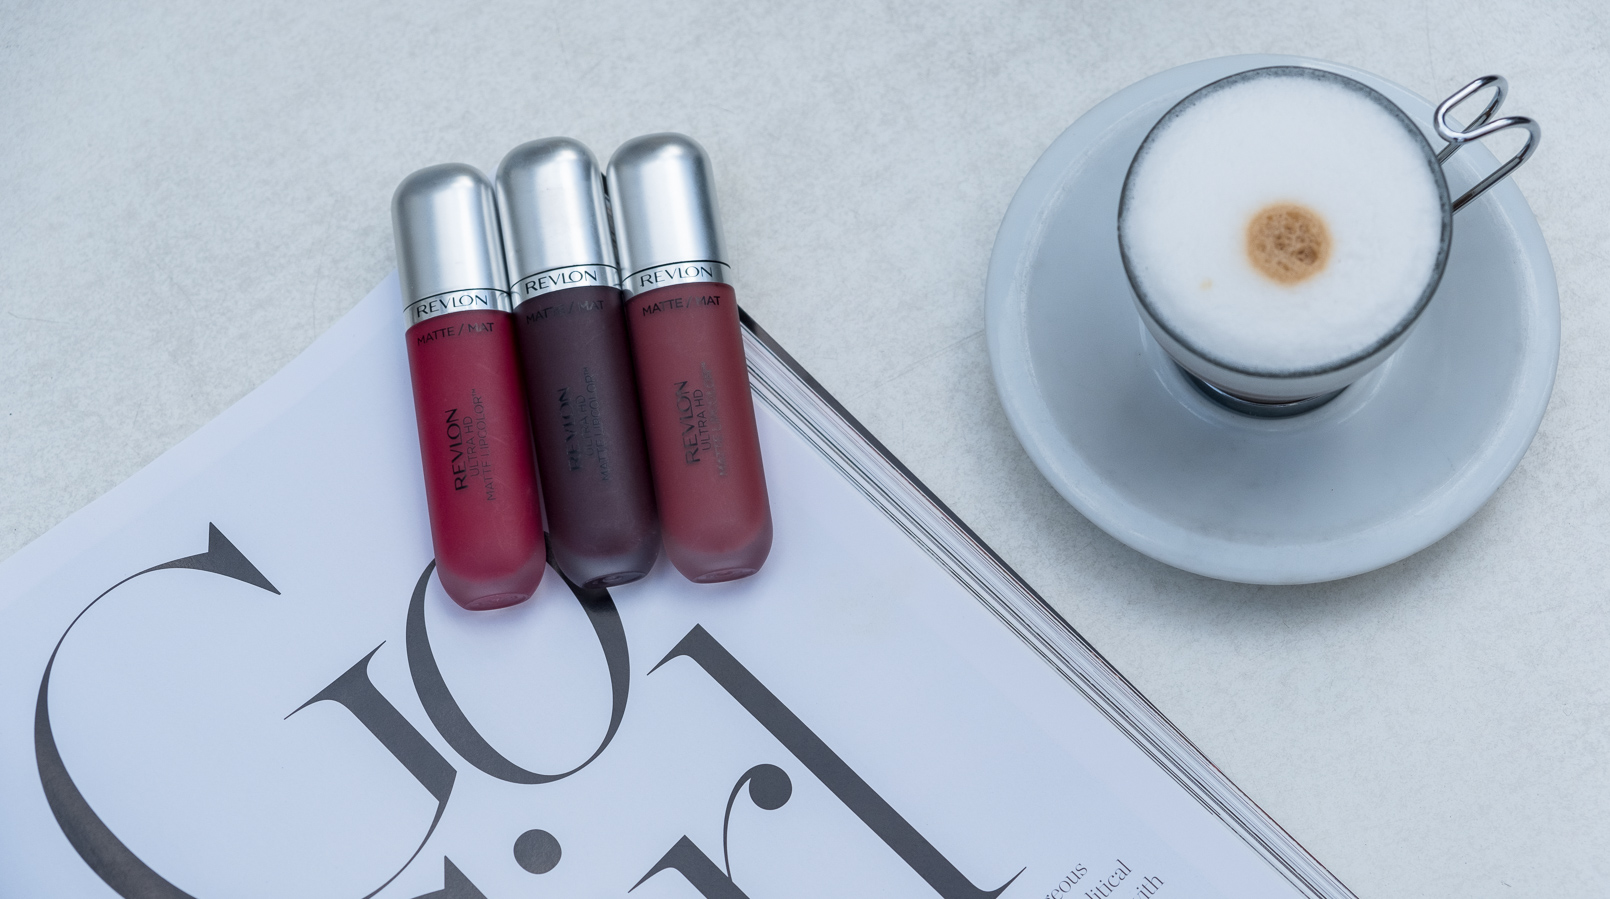 Le Fashionaire The Revlon lipsticks you need now coffee casinha boutique cafe revlon matte nude lipstick kisses revlon matte cherry lipstick passion revlon matte dark purple lipstick attirance 2977F EN